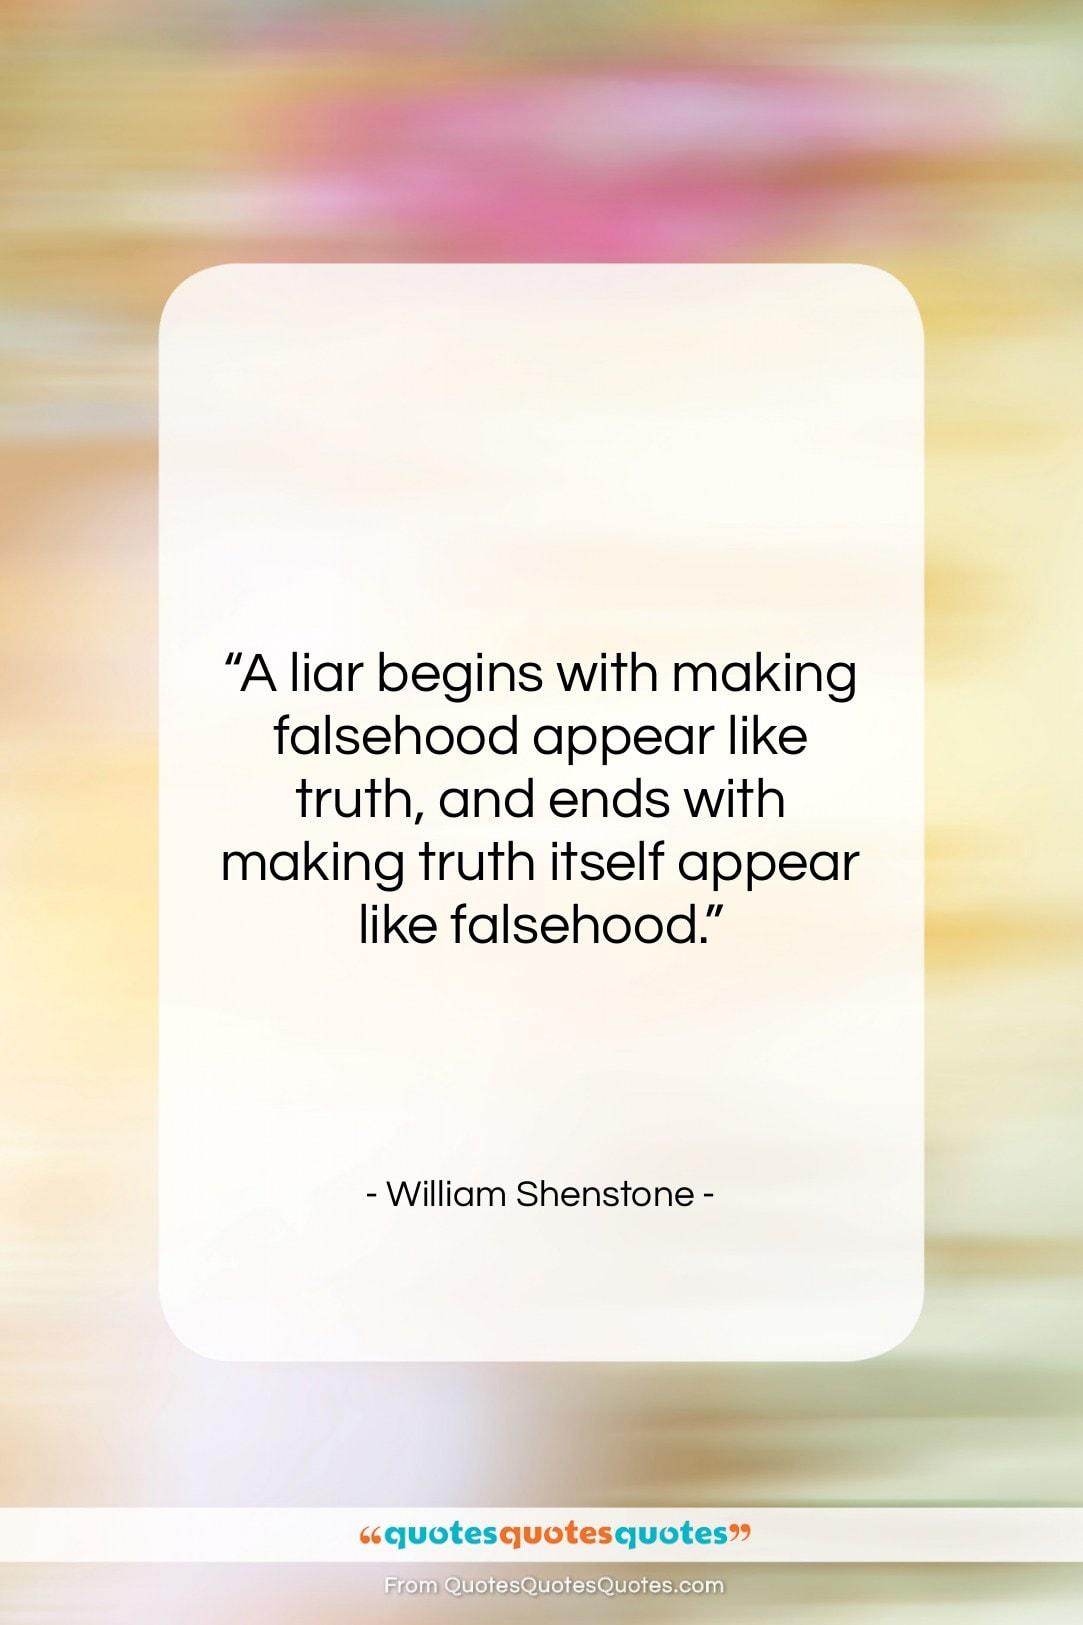 Get the whole William Shenstone quote: \